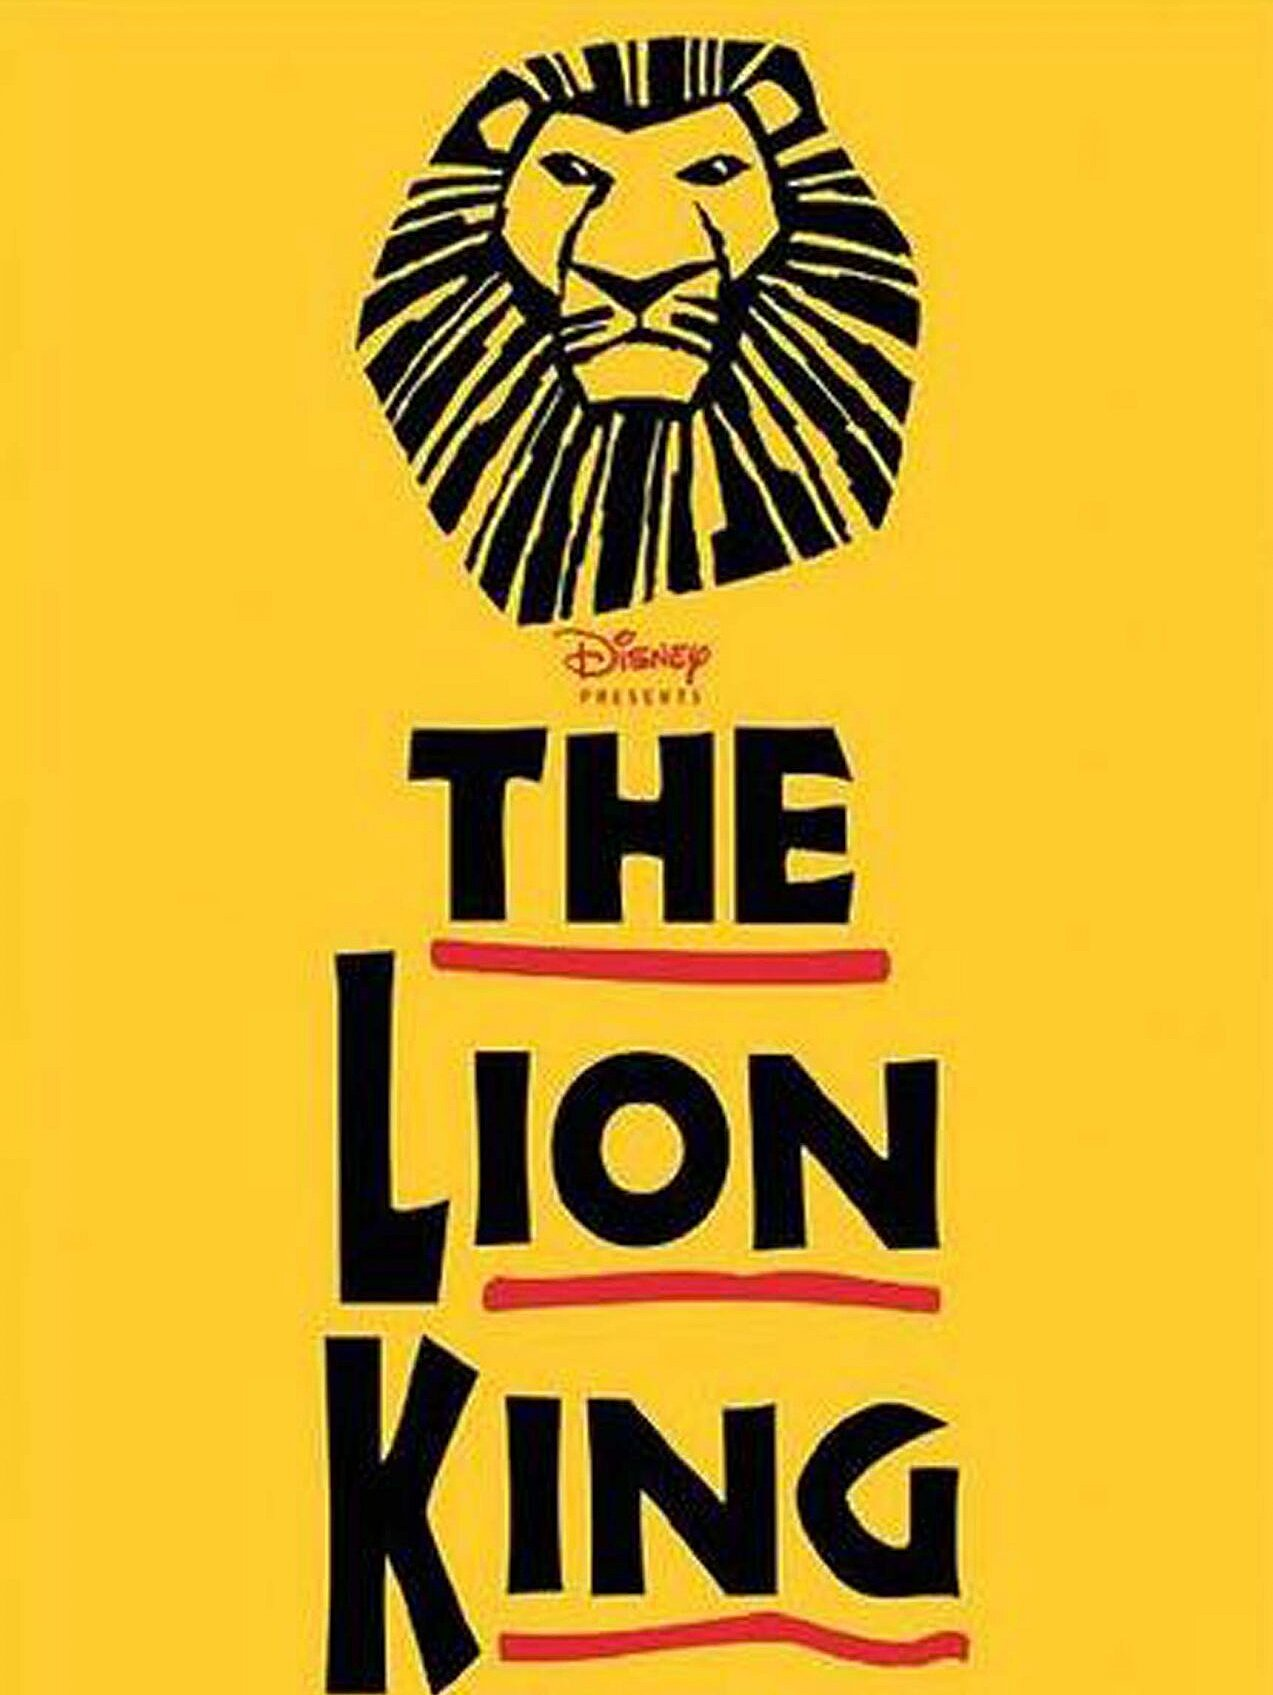 Stories Behind The Lion King Sweeney Todd And More Iconic Broadway Posters Ew Com